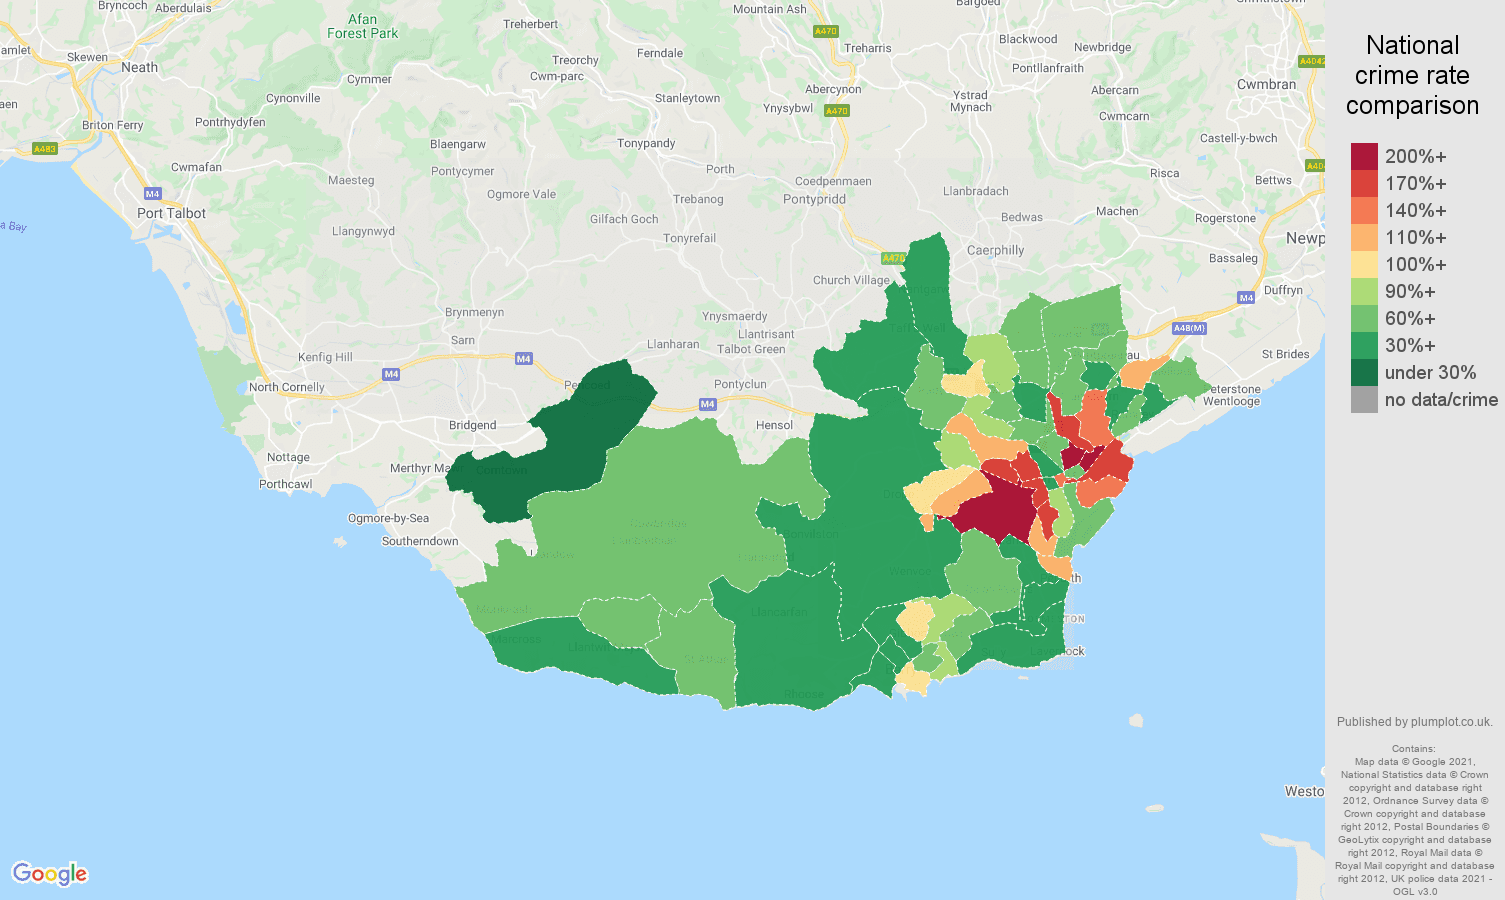 South Glamorgan burglary crime rate comparison map